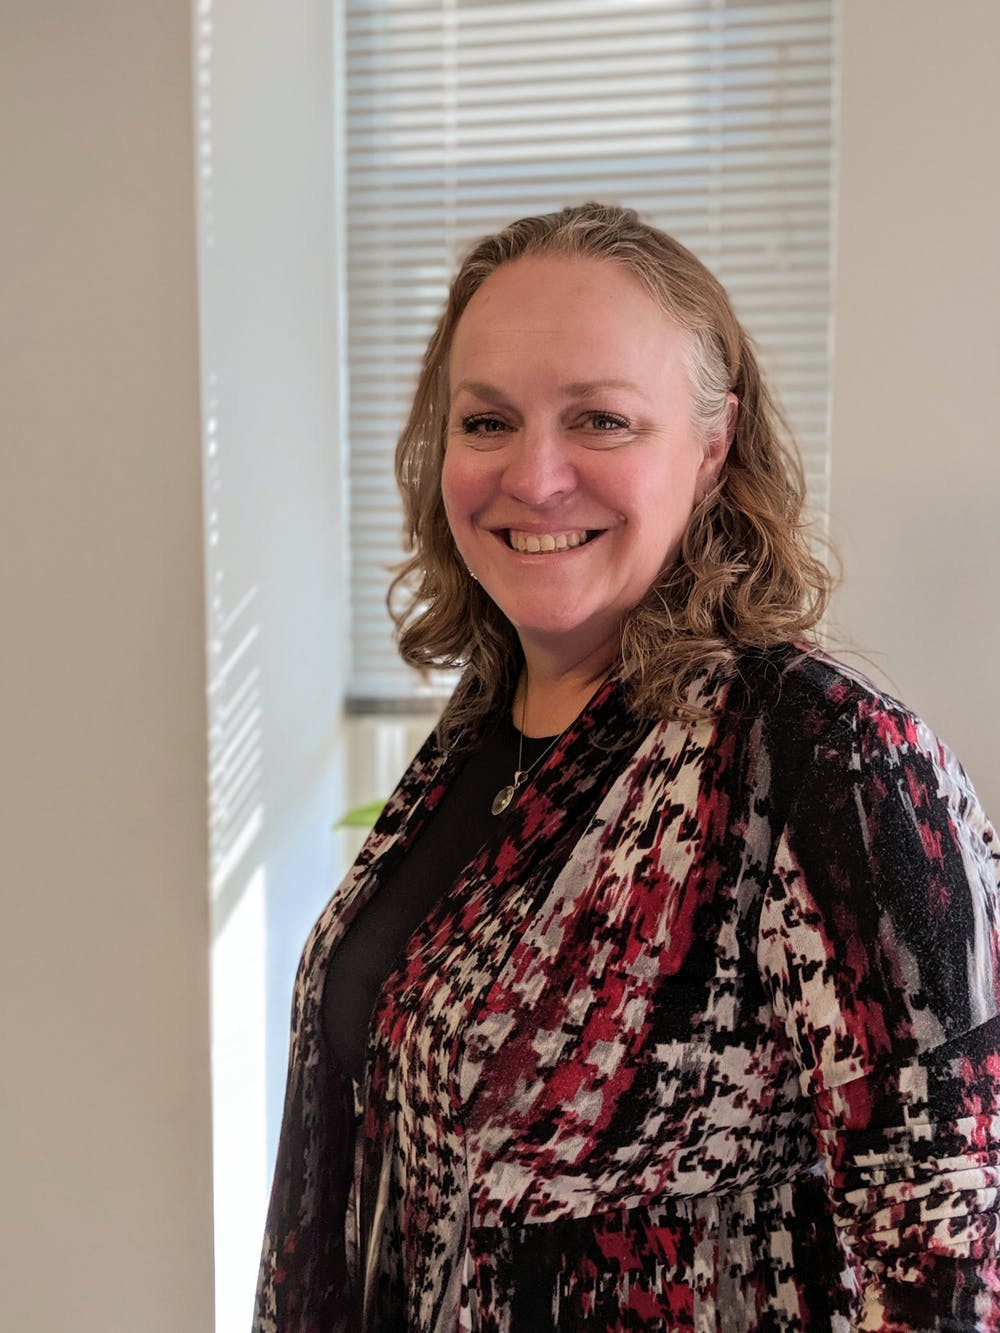 <p>In addition to being the CEO of ThirdWay, Cami Anderson is a former superintendent of Newark Schools.</p> <h6>Photo Credit: Cami Anderson</h6>